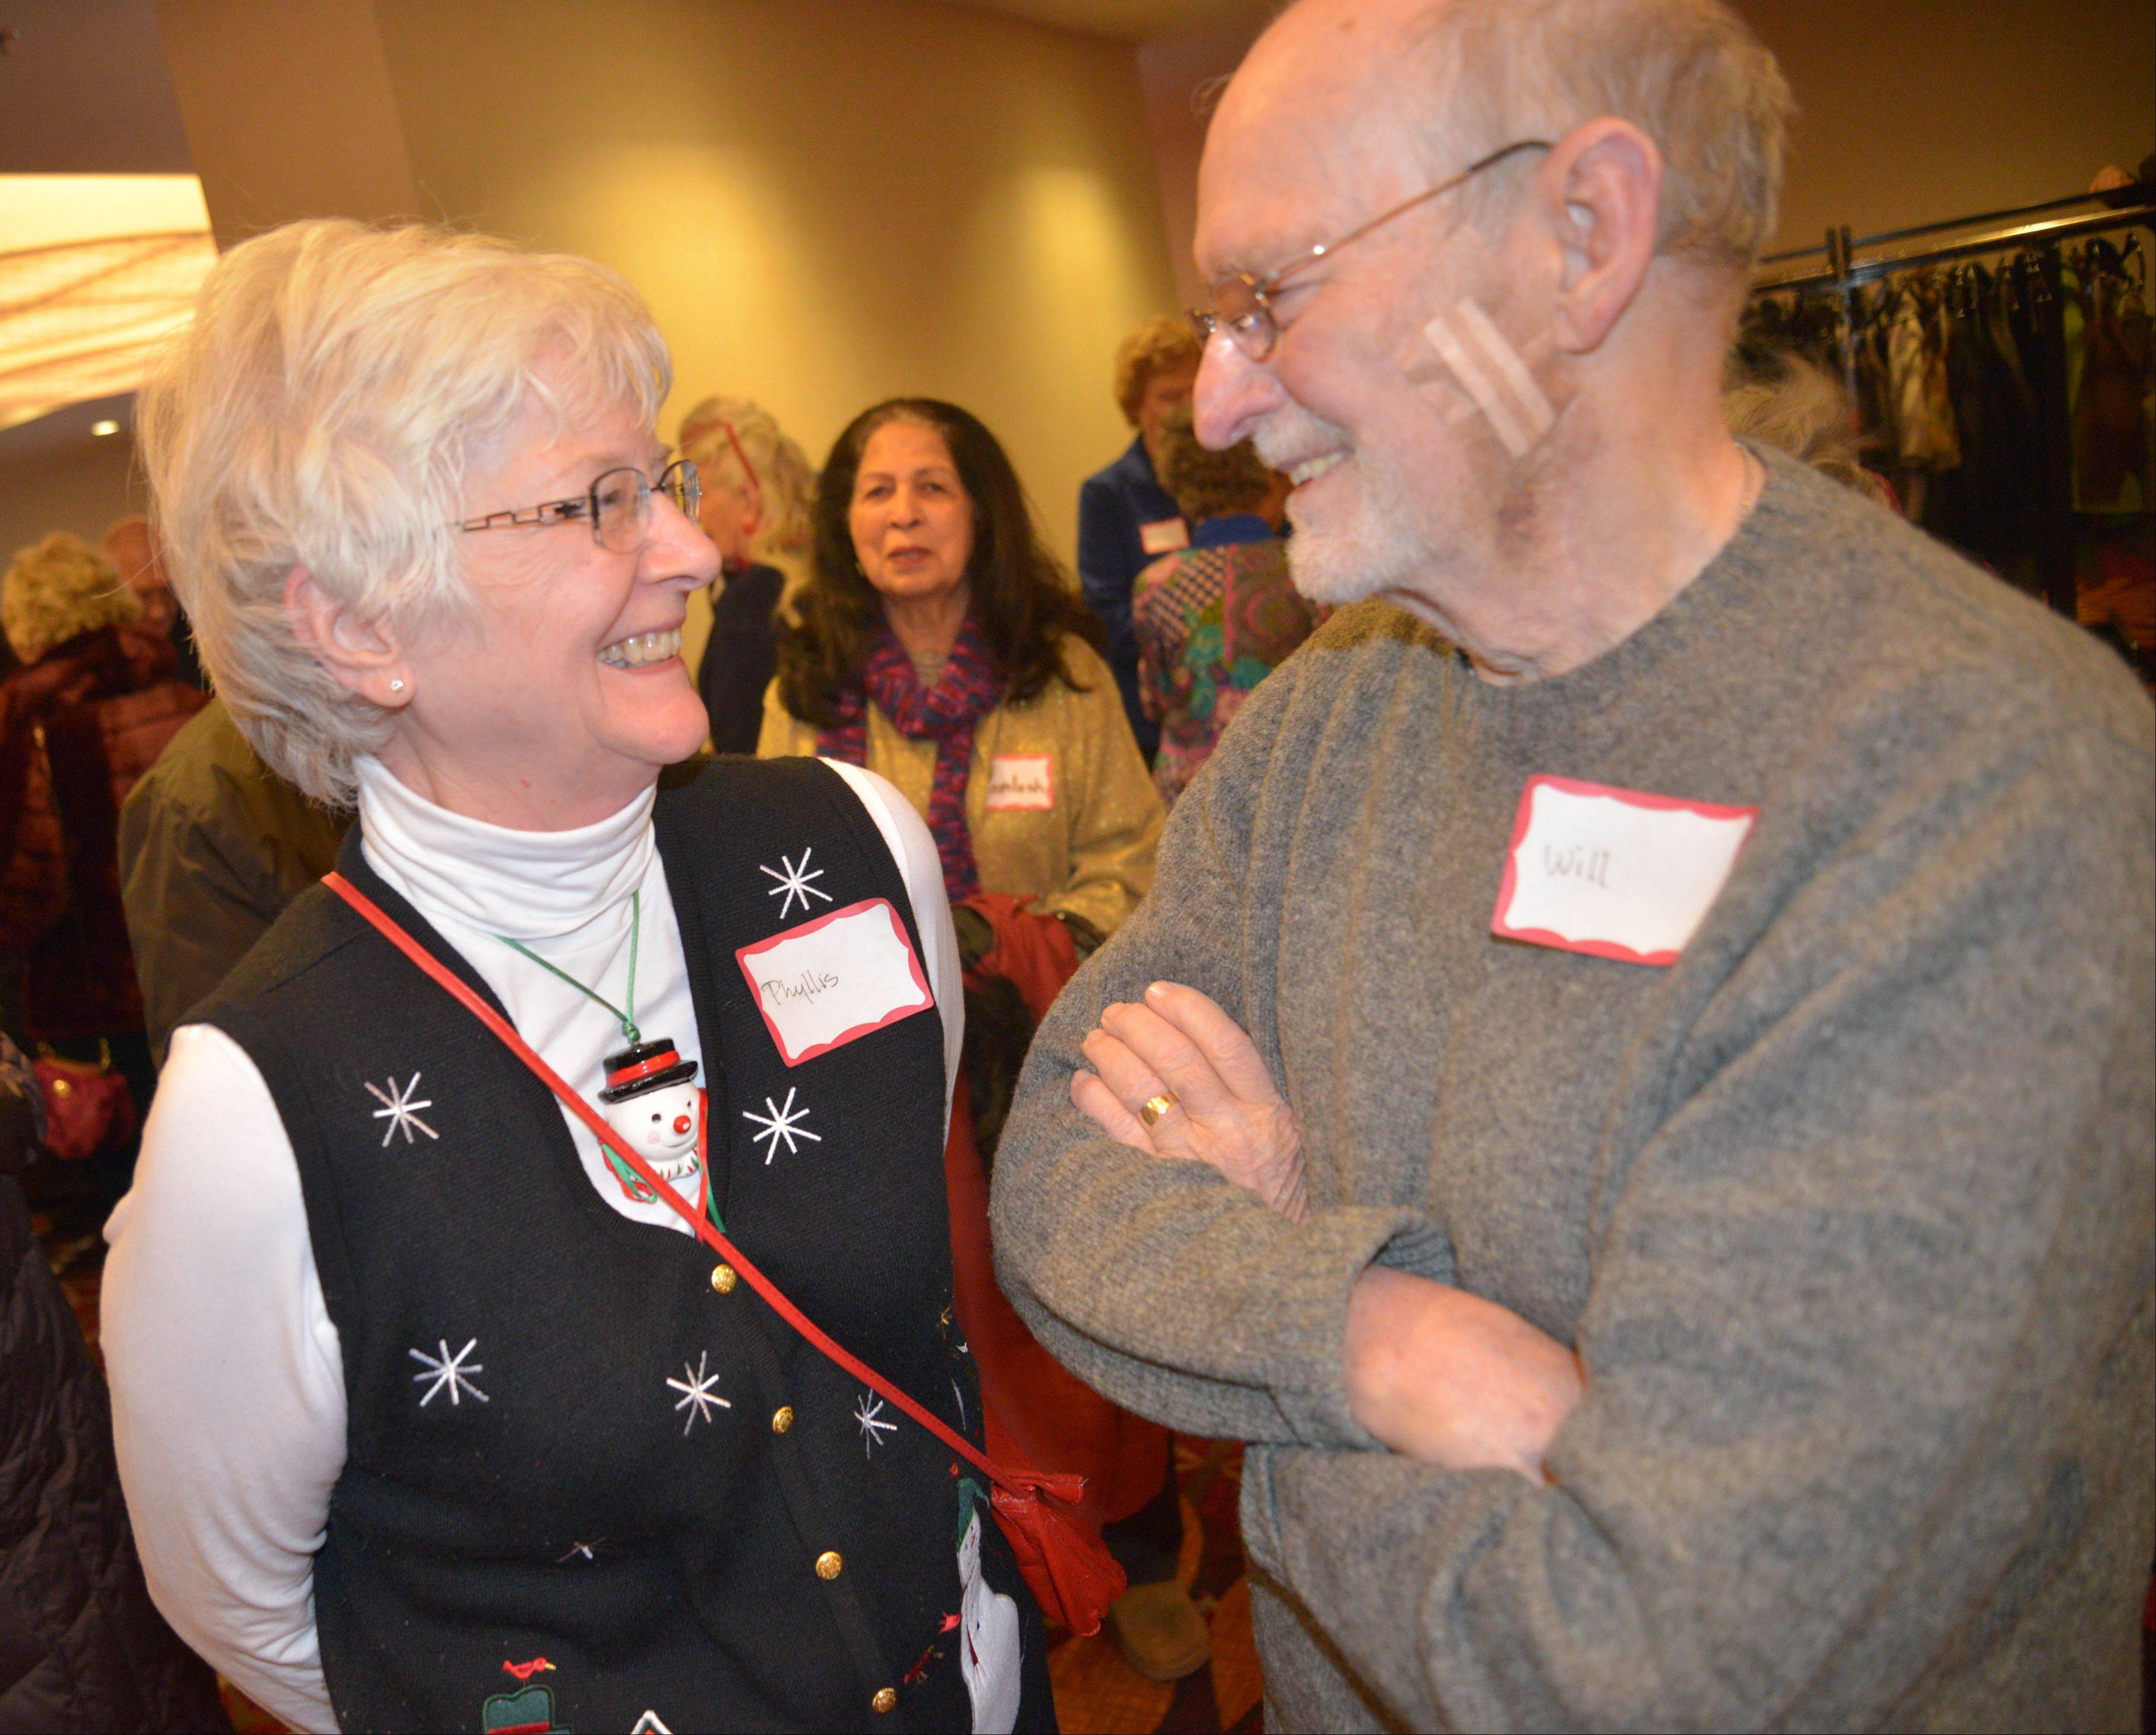 Phyllis and Will LaRiviere of Naperville are all smiles at the 30th annual Christmas senior luncheon, hosted by the Naperville Park District and Naperville YMCA, on Wednesday.